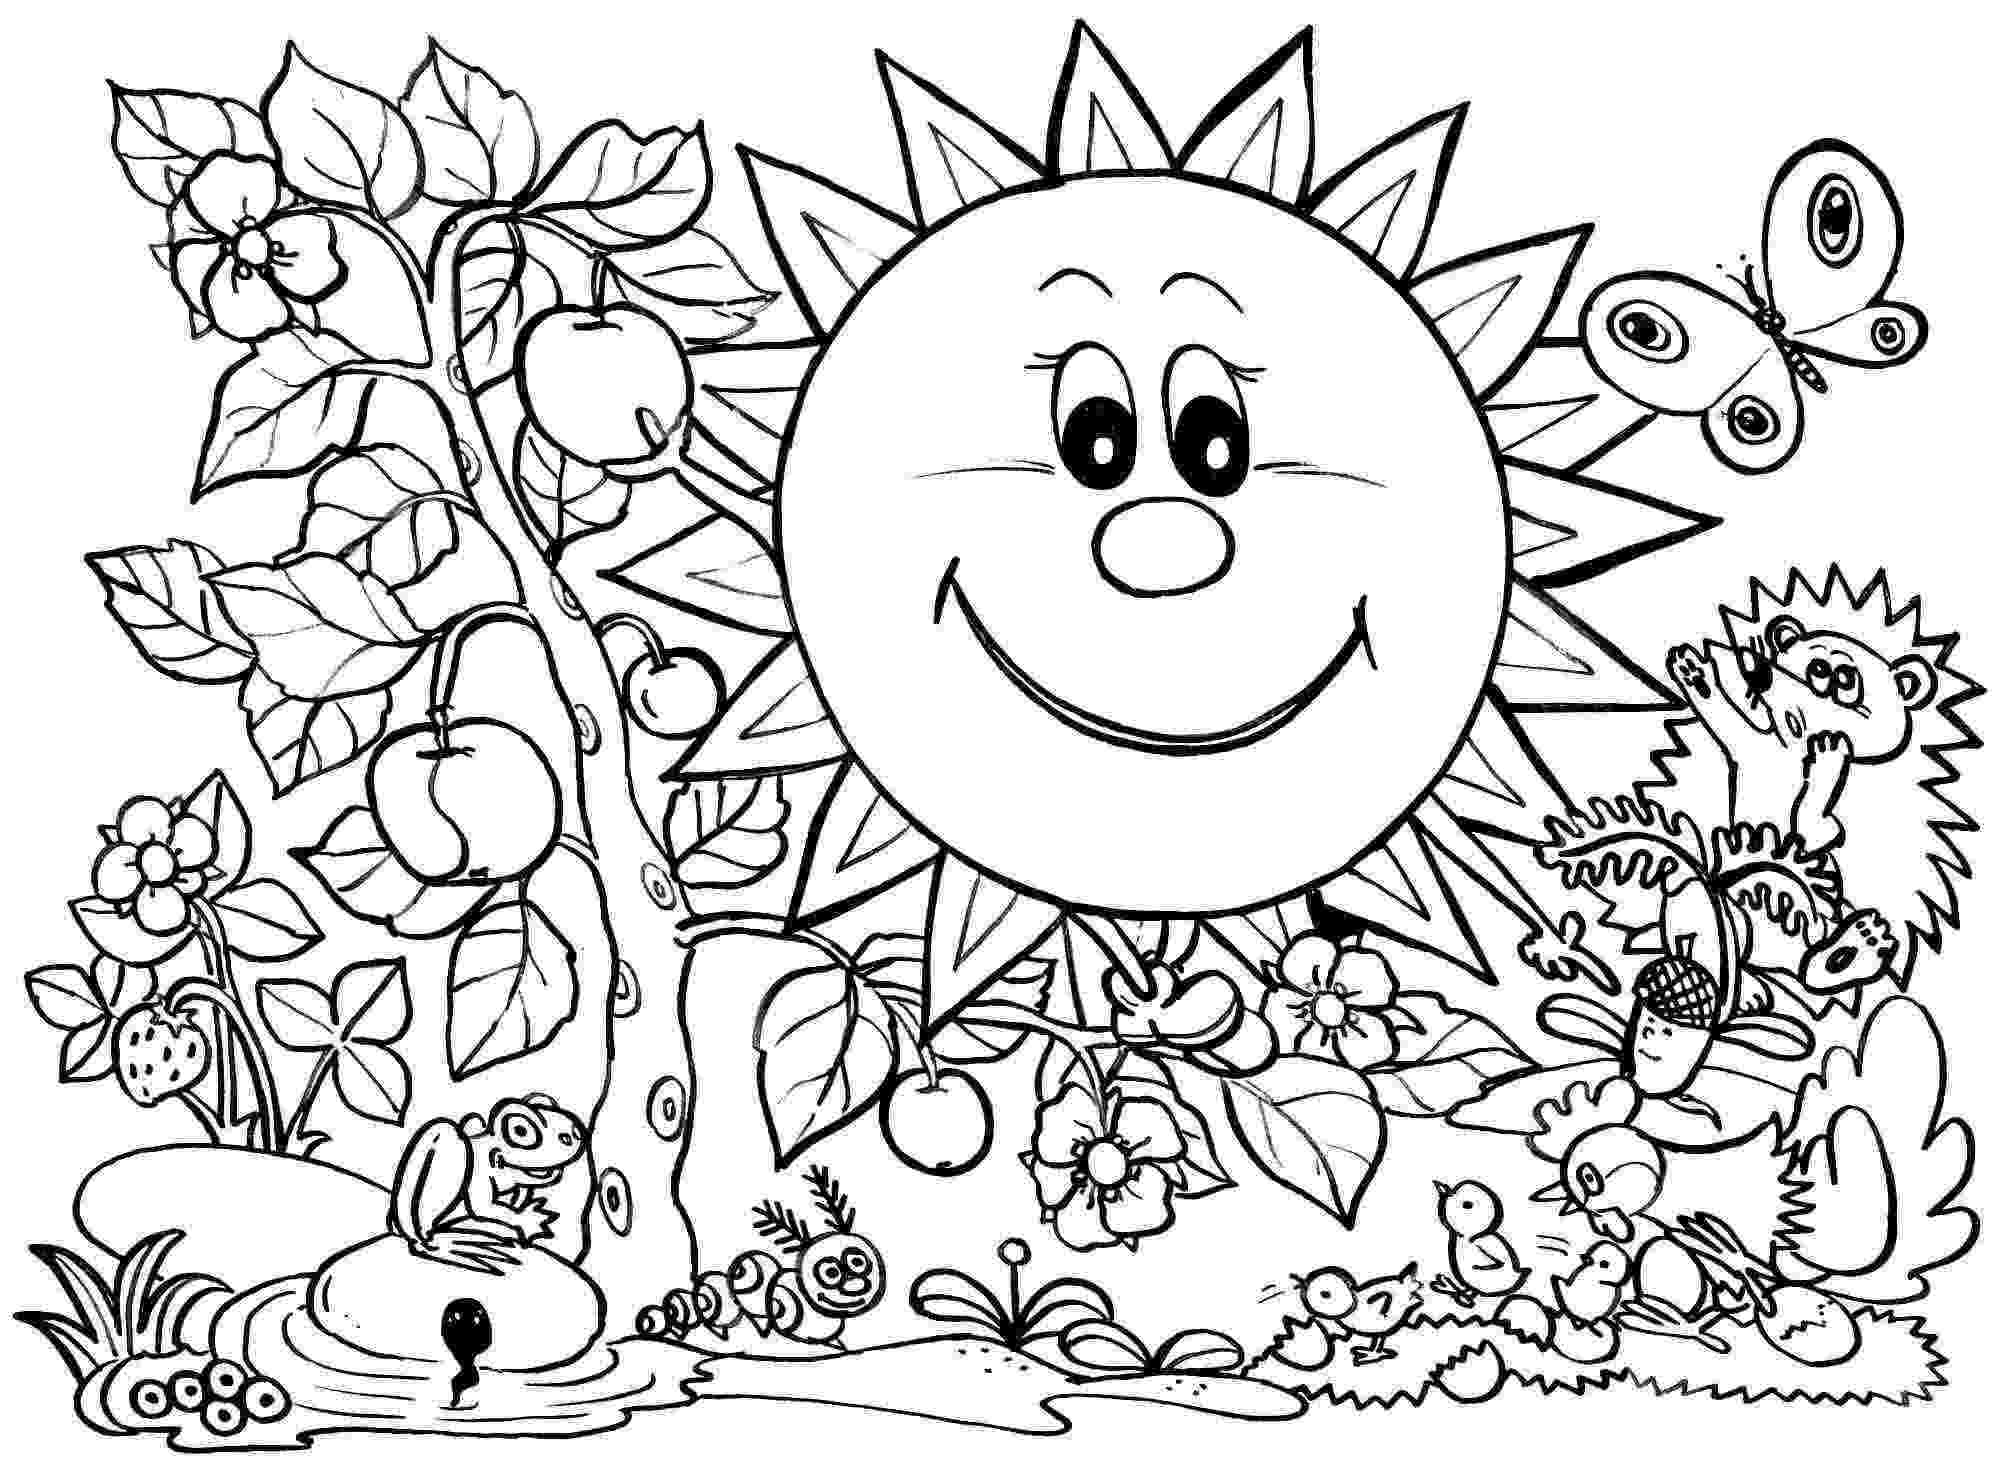 mindfulness colouring pages mindfulness coloring pages at getcoloringscom free colouring pages mindfulness